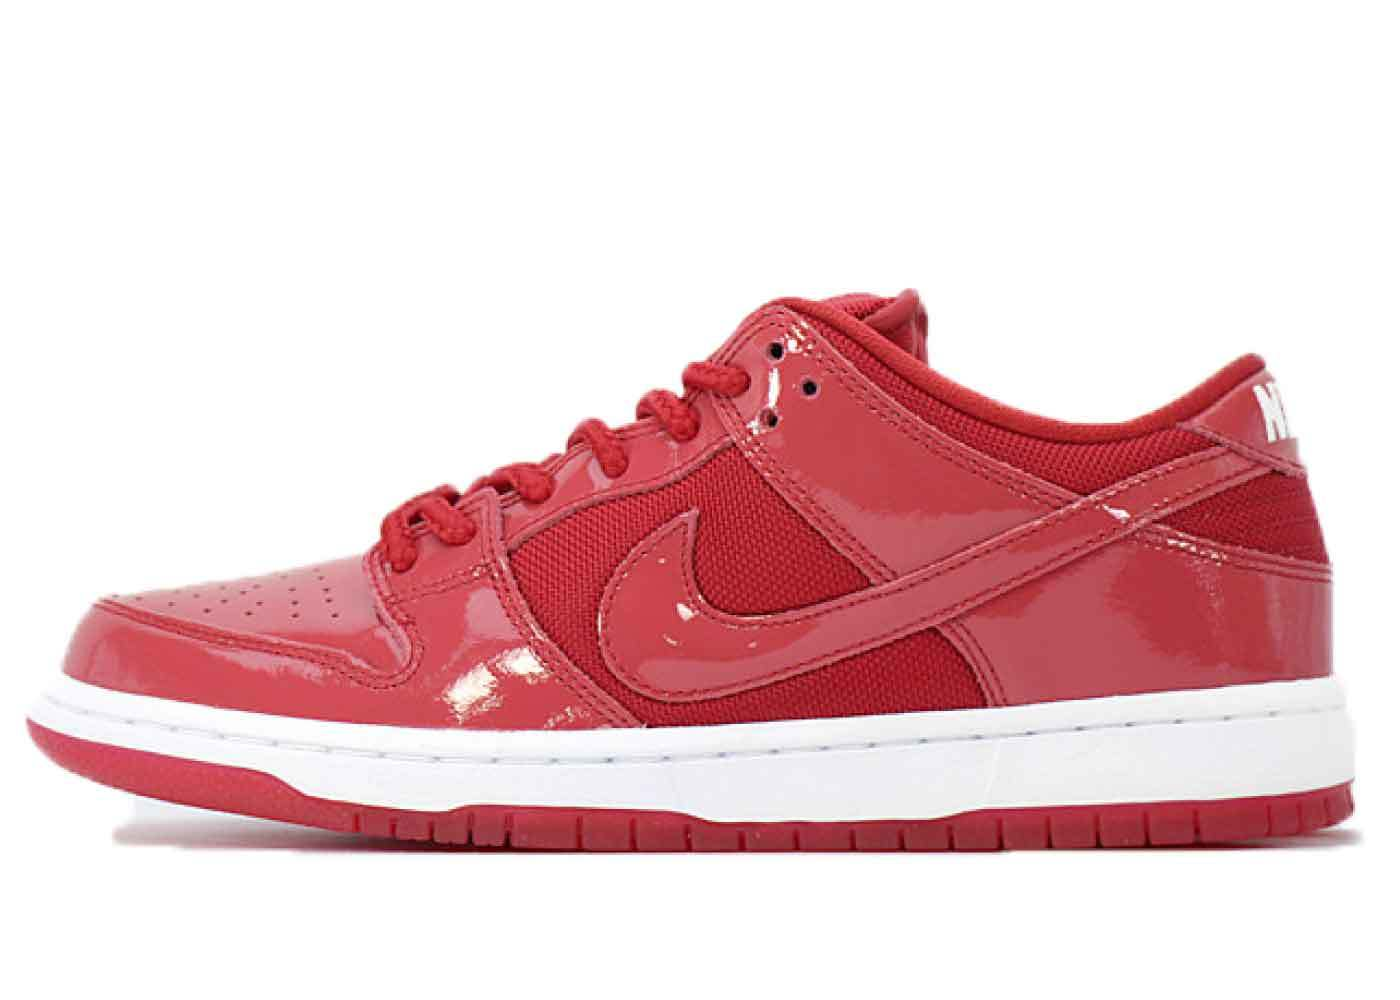 Nike SB Dunk Low Red Patent Leatherの写真